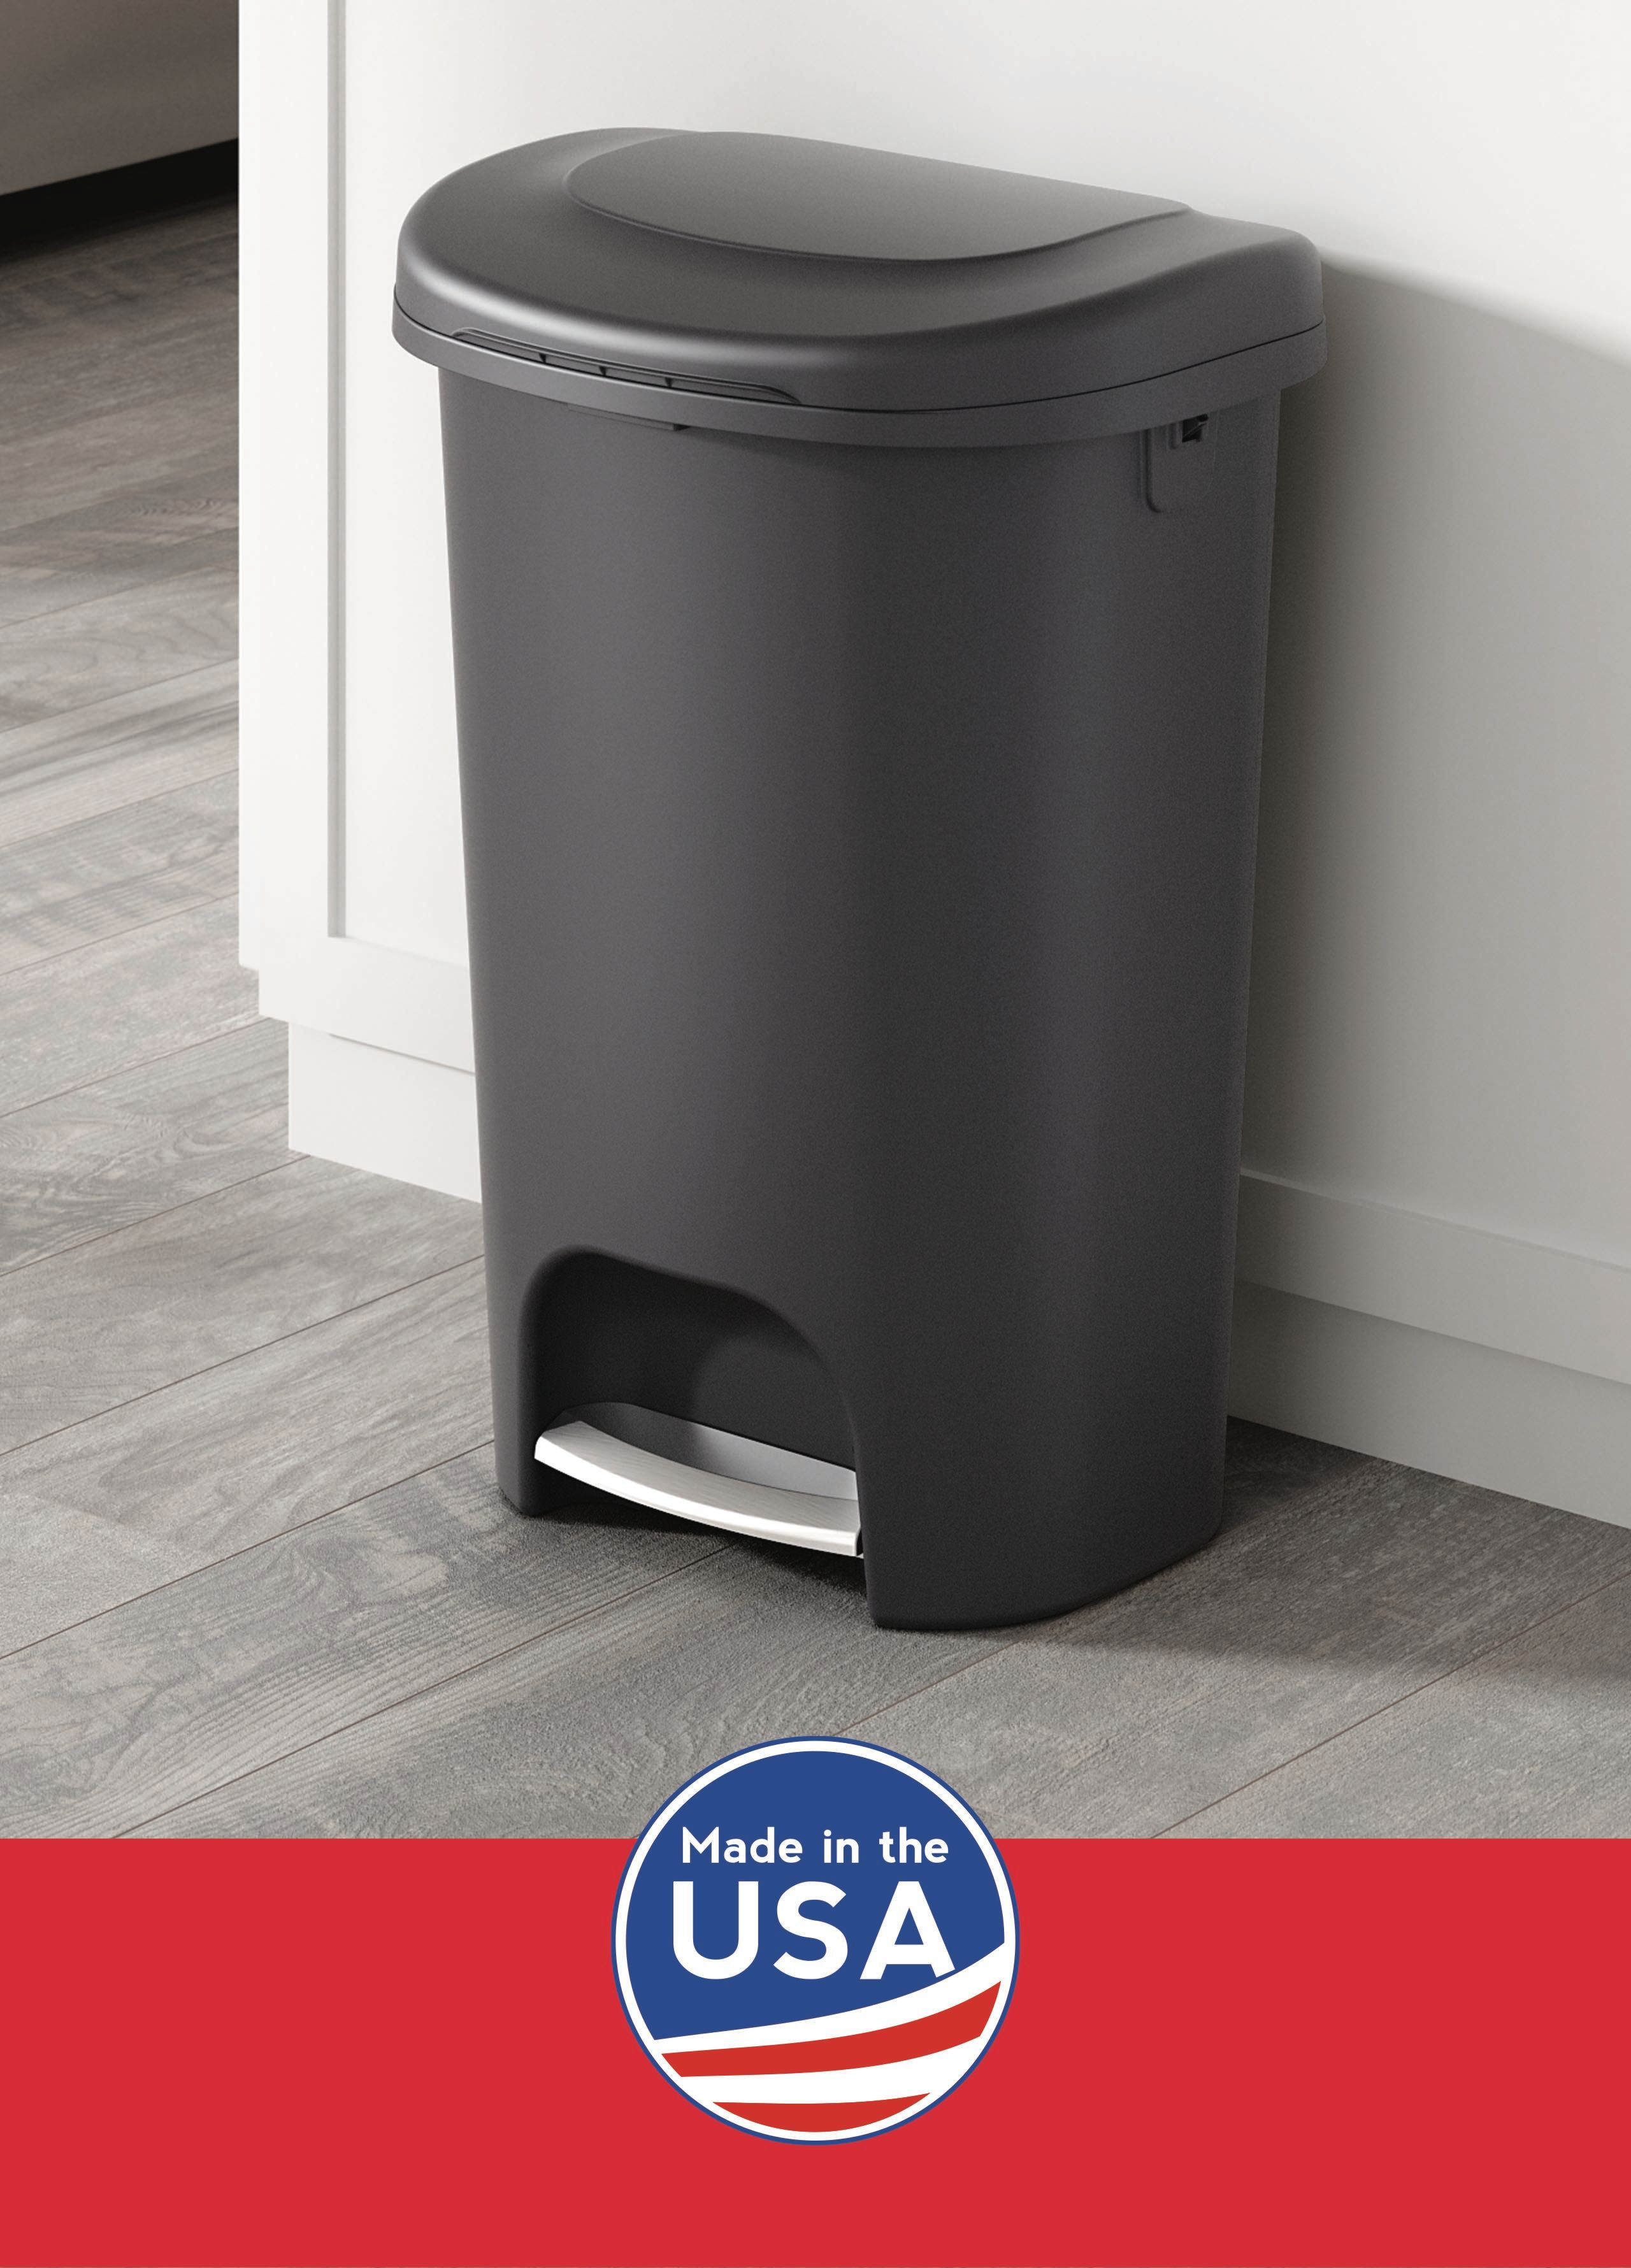 Rubbermaid Step-On Lid Trash Can for Home,Kitchen,Bathroom Garbage,13 Gallon